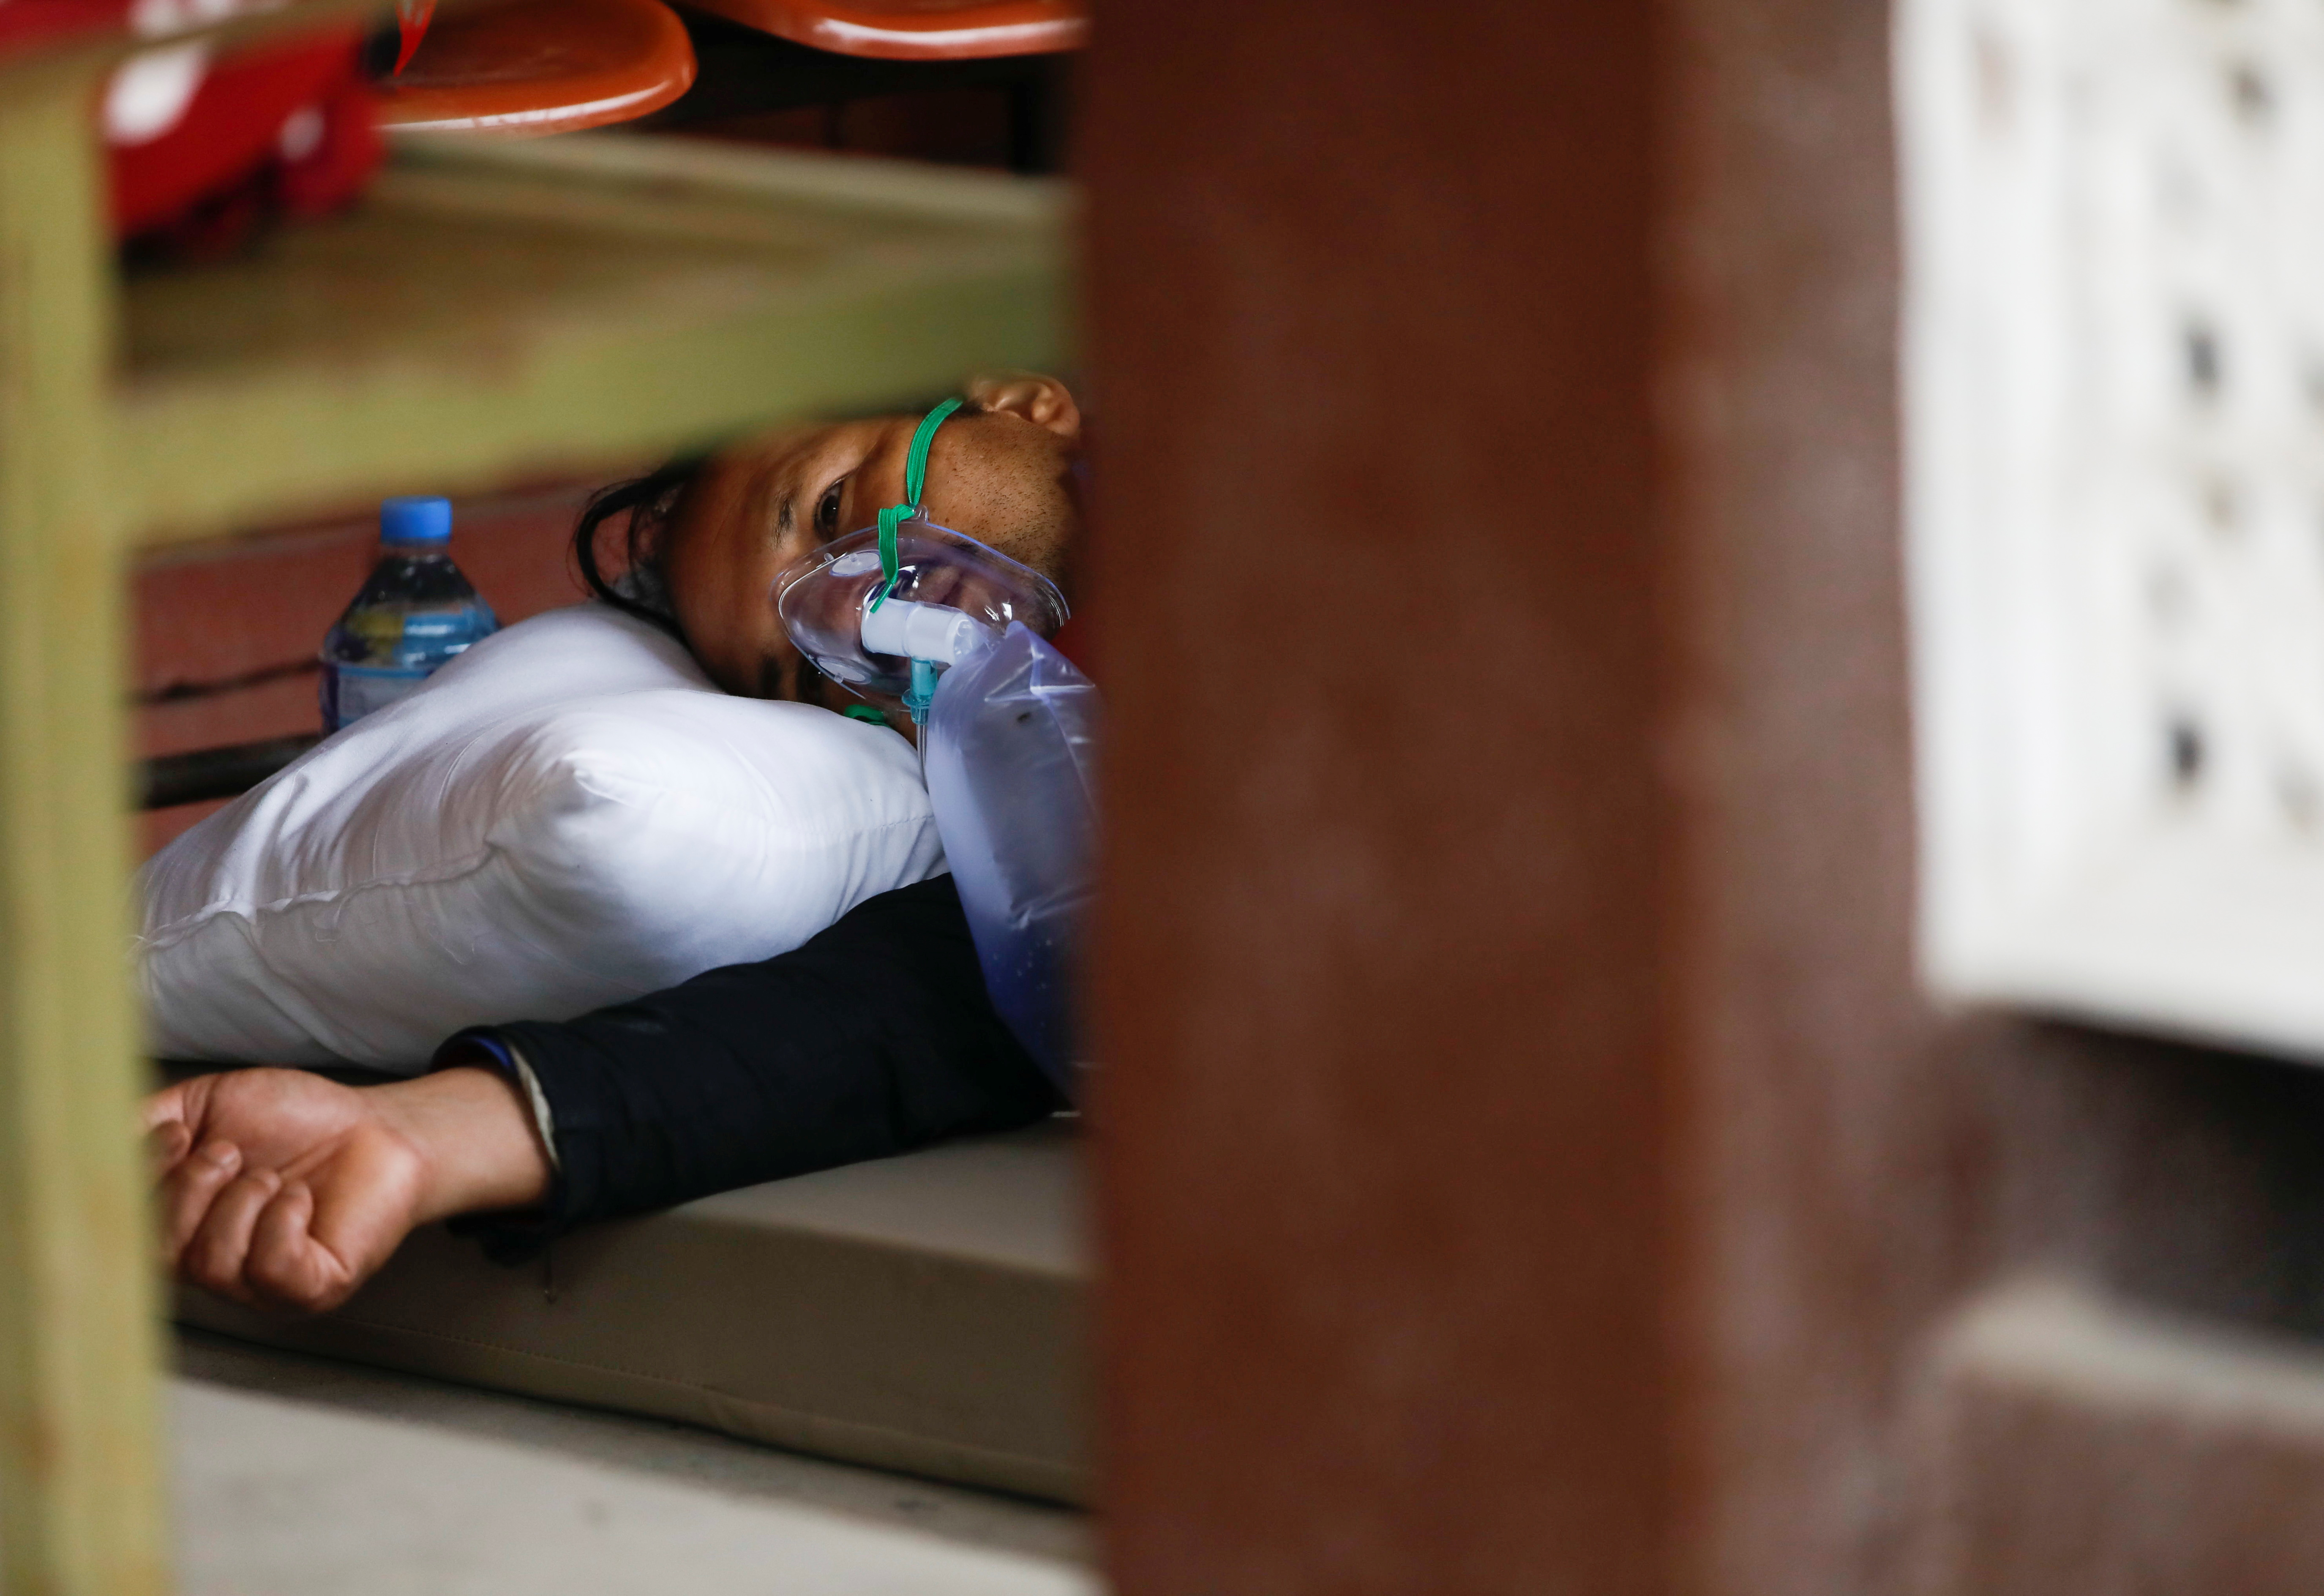 A patient receives oxygen as he lays on the floor outside the passage of a hospital due to a lack of free beds at the hospital for coronavirus disease (COVID-19) patients, as the second major coronavirus wave surges in Kathmandu, Nepal, May 10, 2021. REUTERS/Navesh Chitrakar